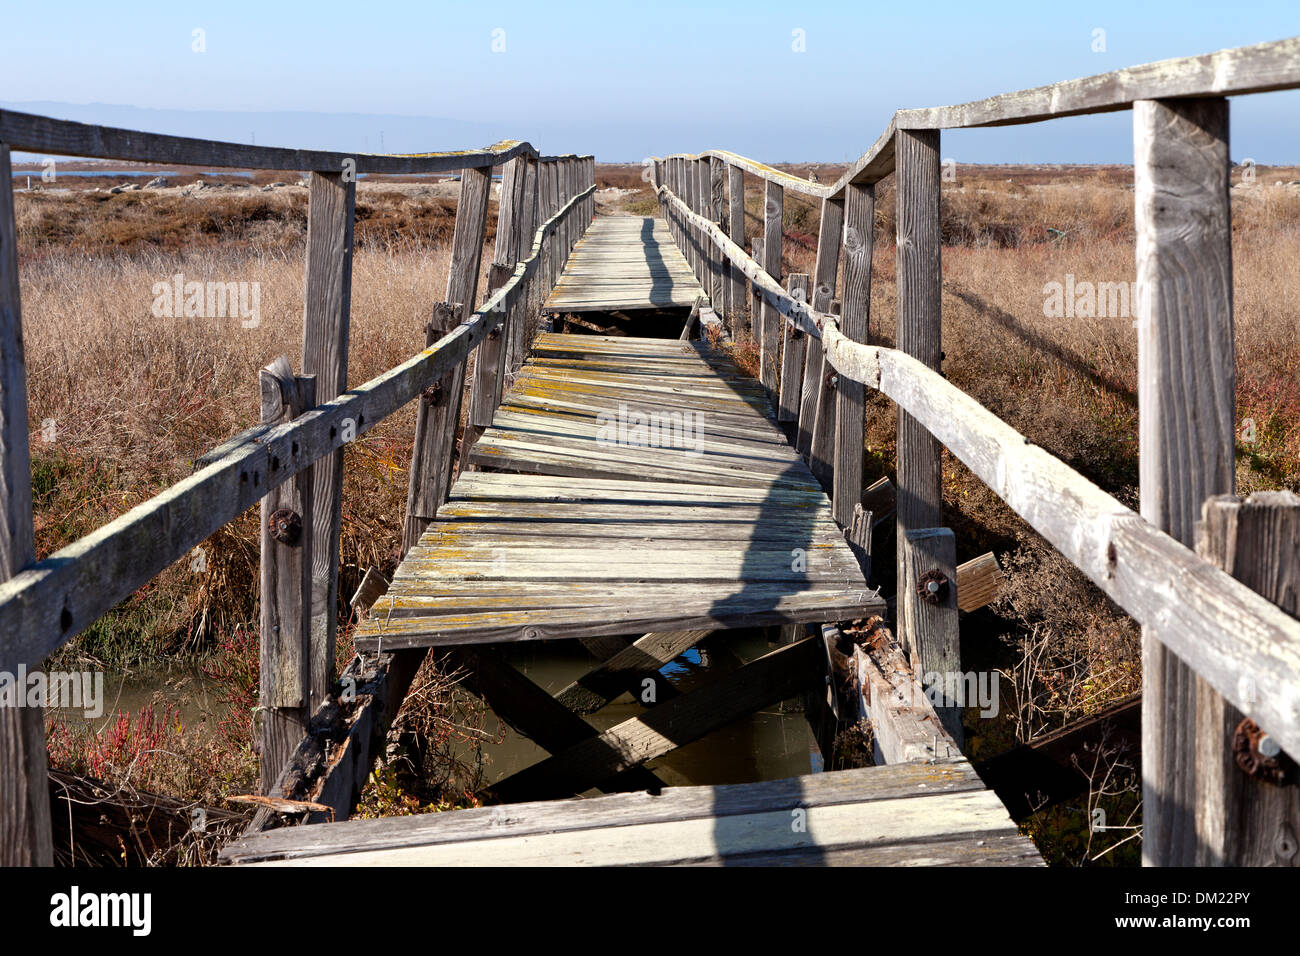 A foot bridge crosses the marsh at the ghost town of Drawbridge in southern San Francisco Bay. - Stock Image